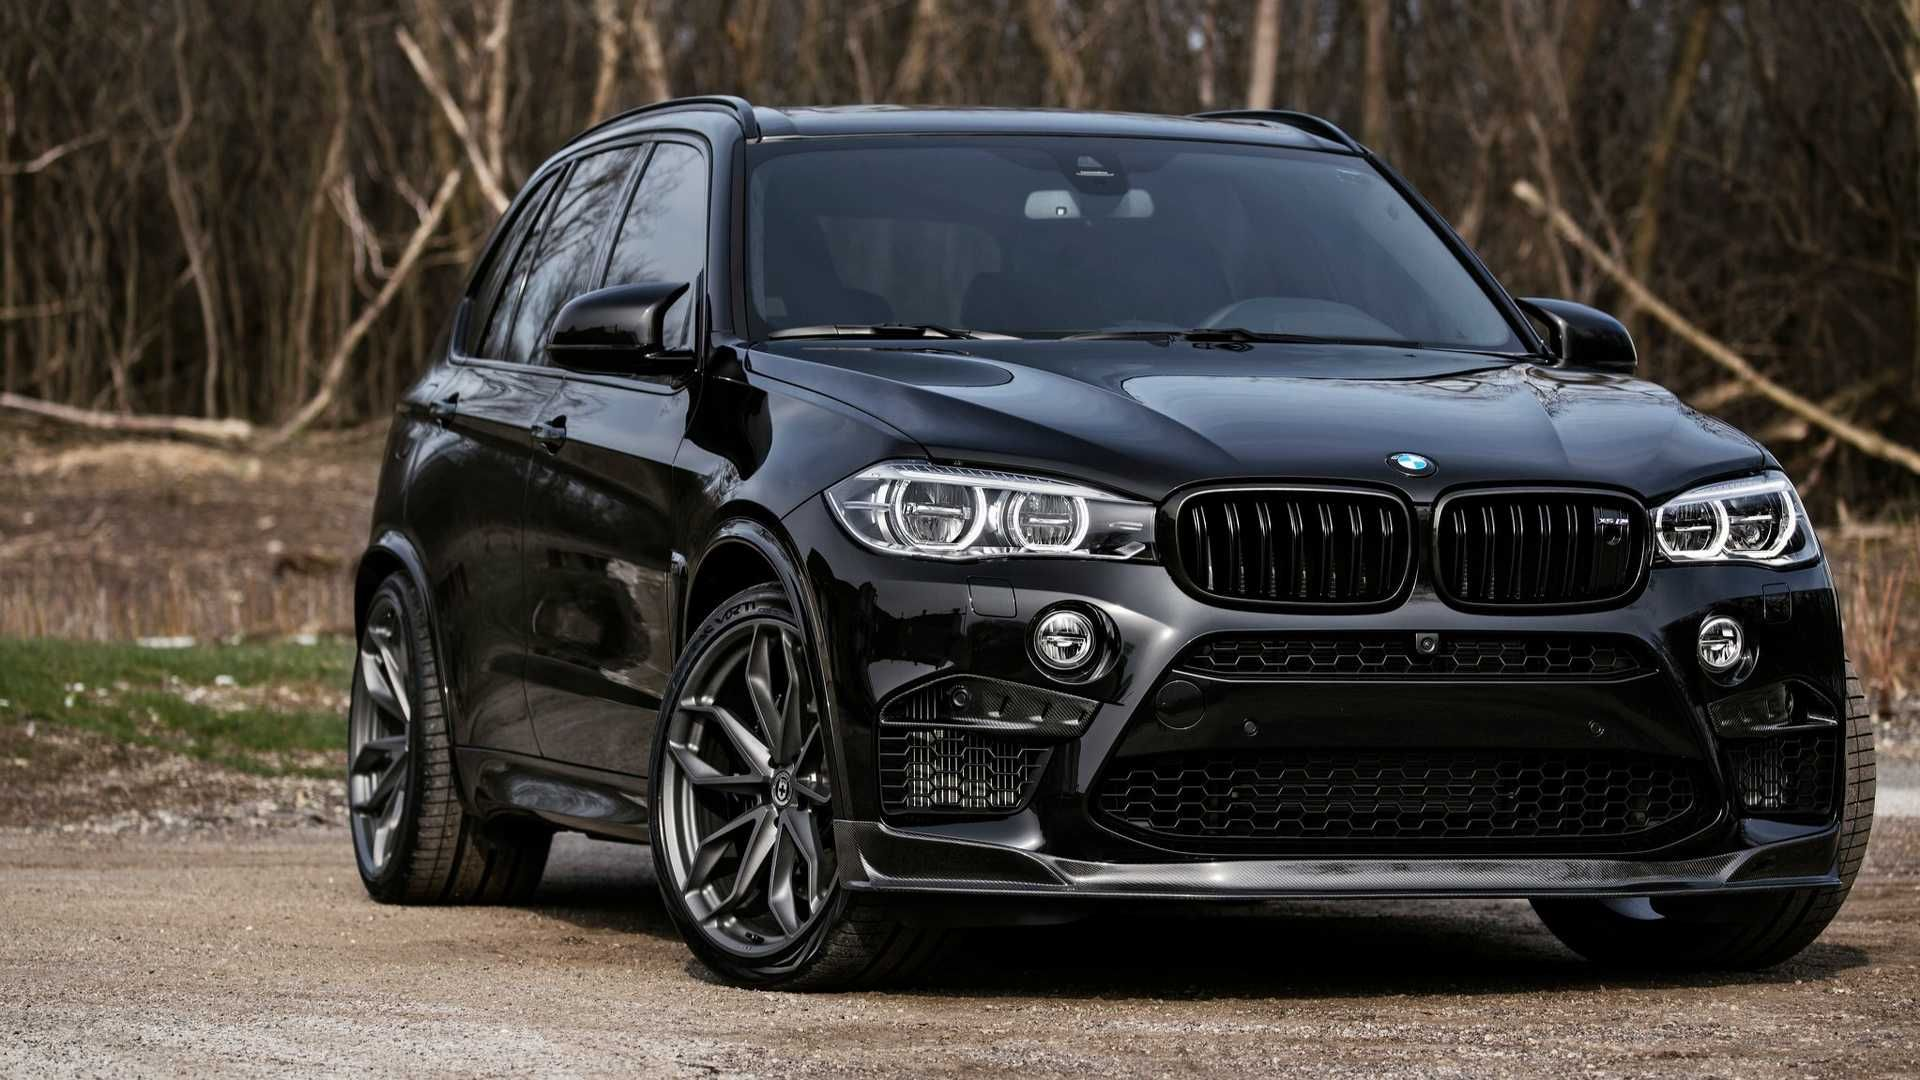 New bmw x5 m by ind distribution v8 575 ch e 84 pinterest new bmw x5 m by ind distribution v8 575 ch voltagebd Gallery